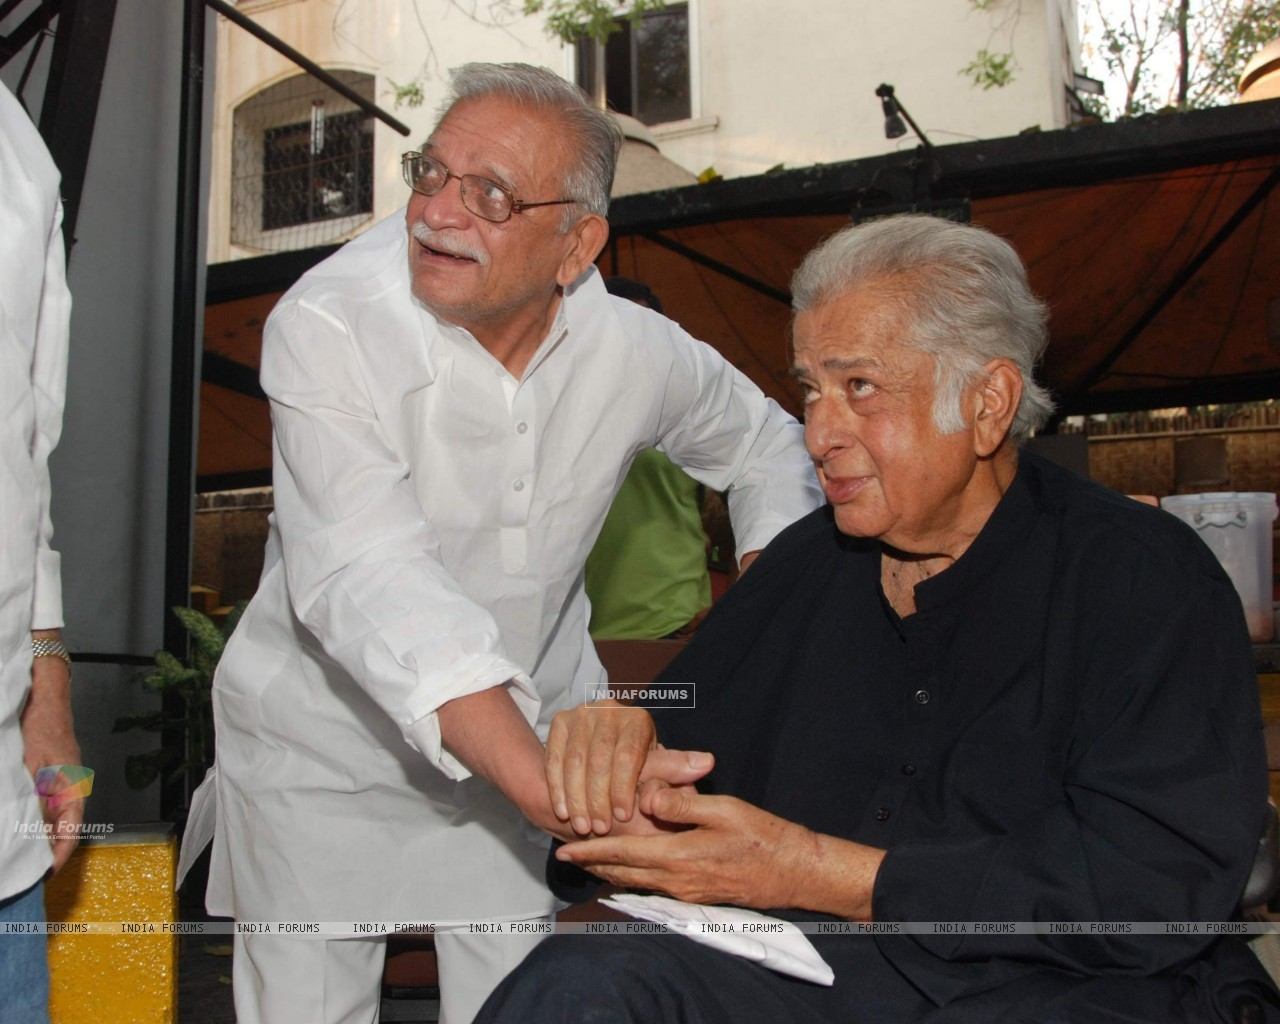 Shashi Kapoor and Gulzar at Rekha Bharadwaj's play premiere show at Prithvi. . (126026) size:1280x1024